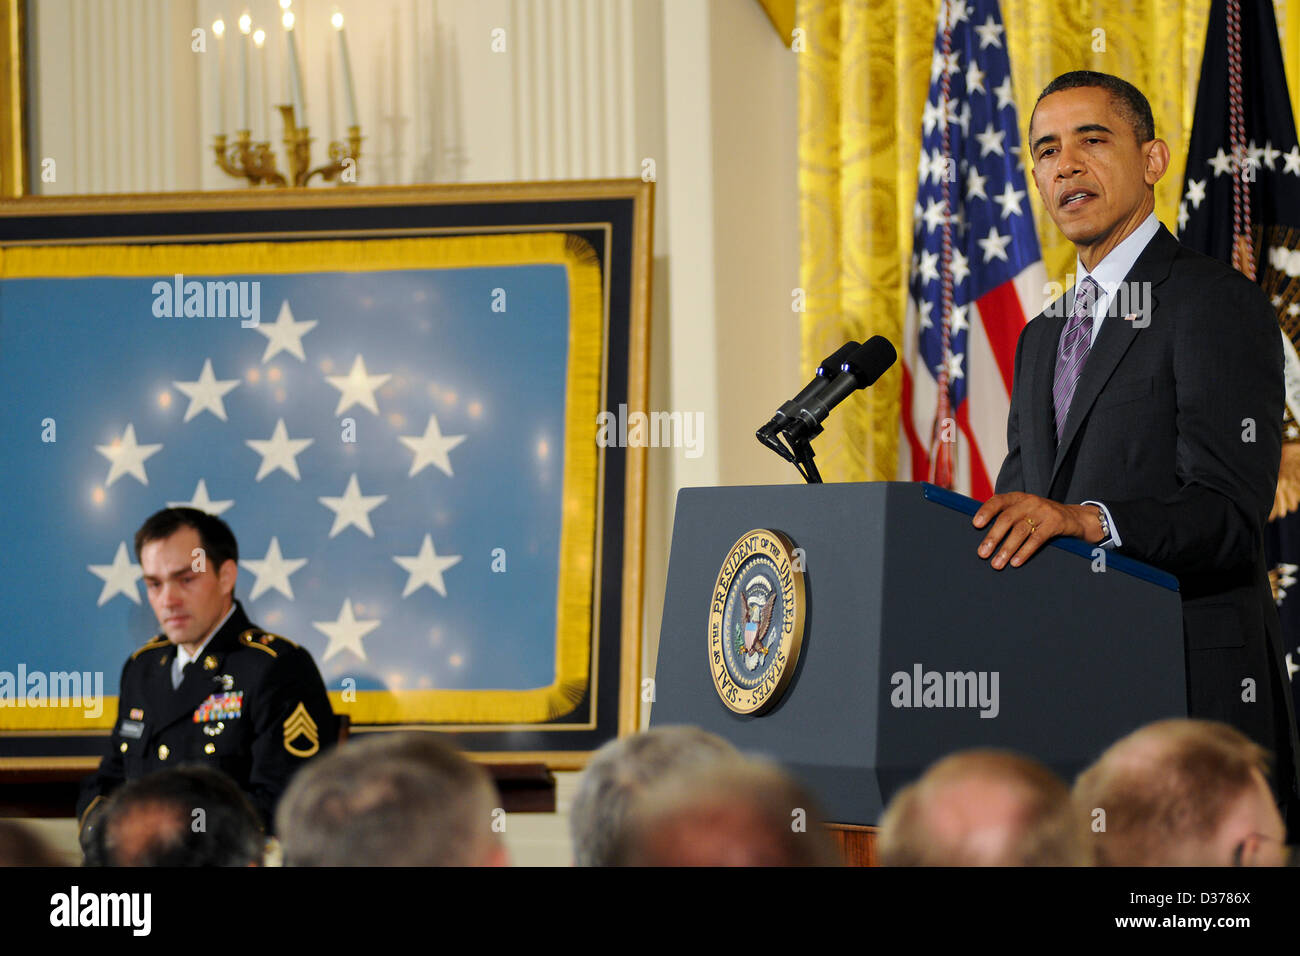 US President Barack Obama speaks before presenting the Medal of Honor to Army Staff Sergeant Clinton Romesha during - Stock Image